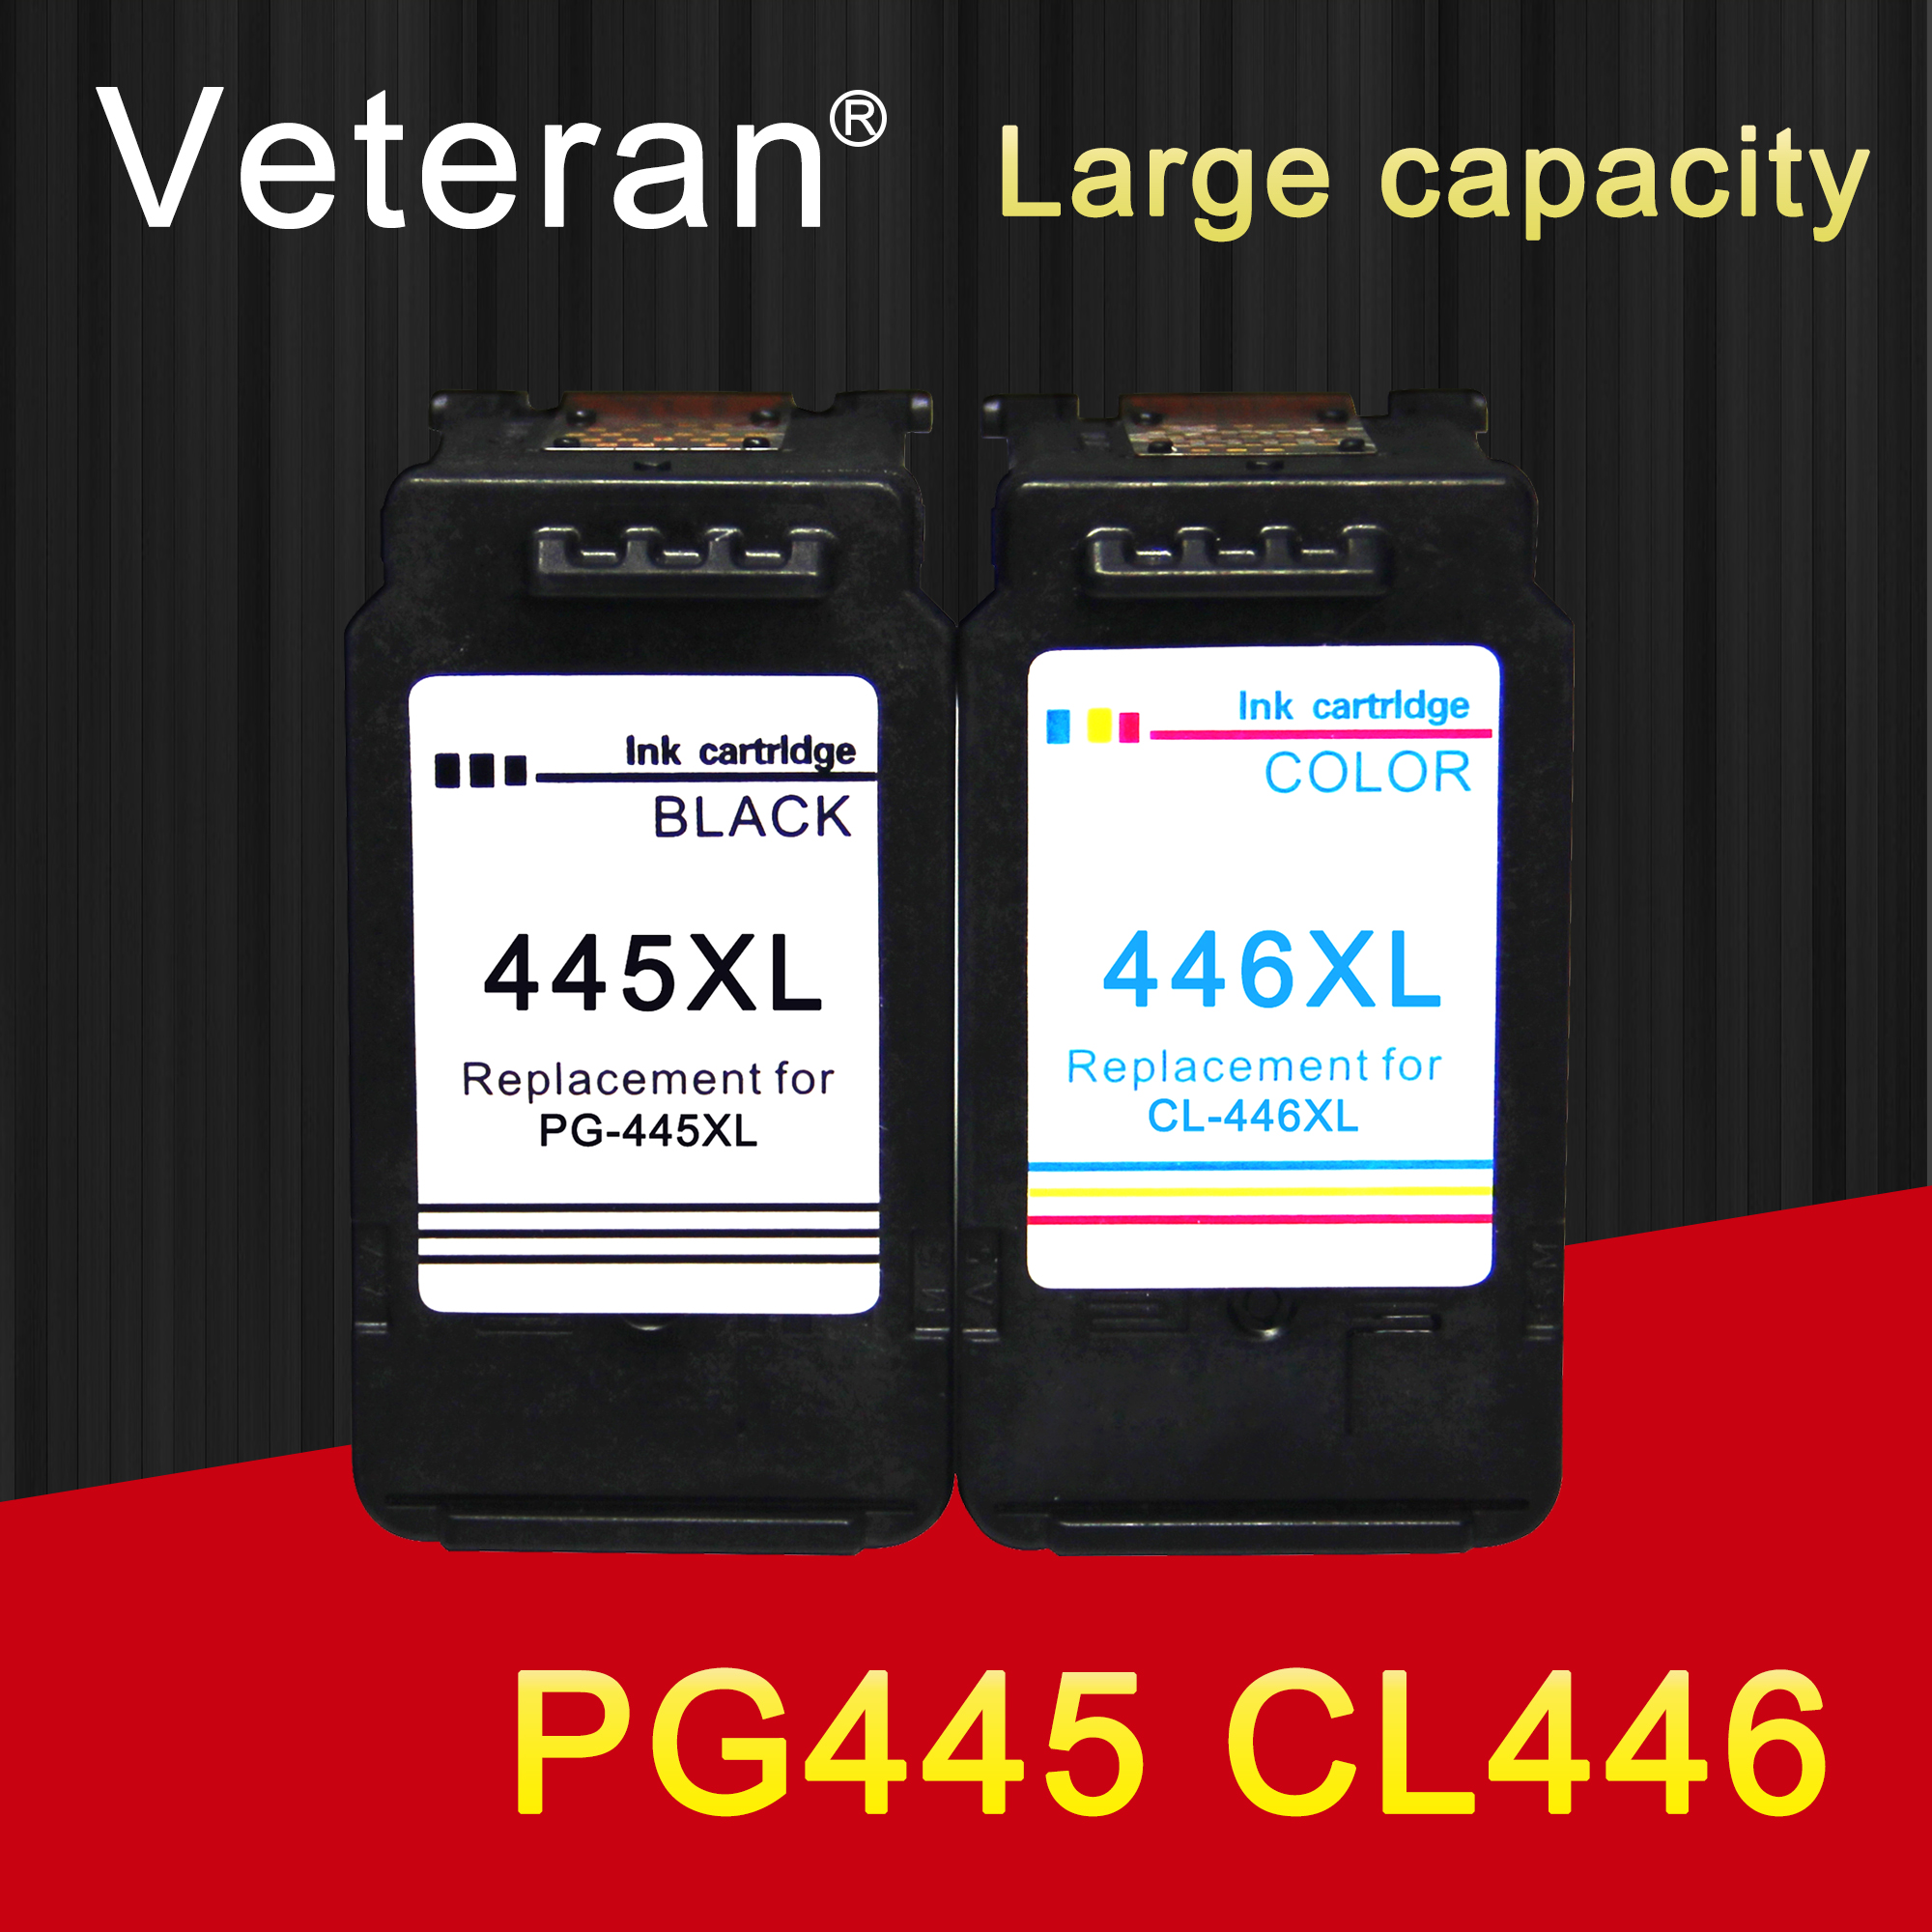 Veteran PG445 CL446 replacement for Canon ink cartridge PG 445 CL 446  for Pixma MG2540 MX494 MG2440 MG2940 MG2942 MX492 printer-in Ink Cartridges from Computer & Office